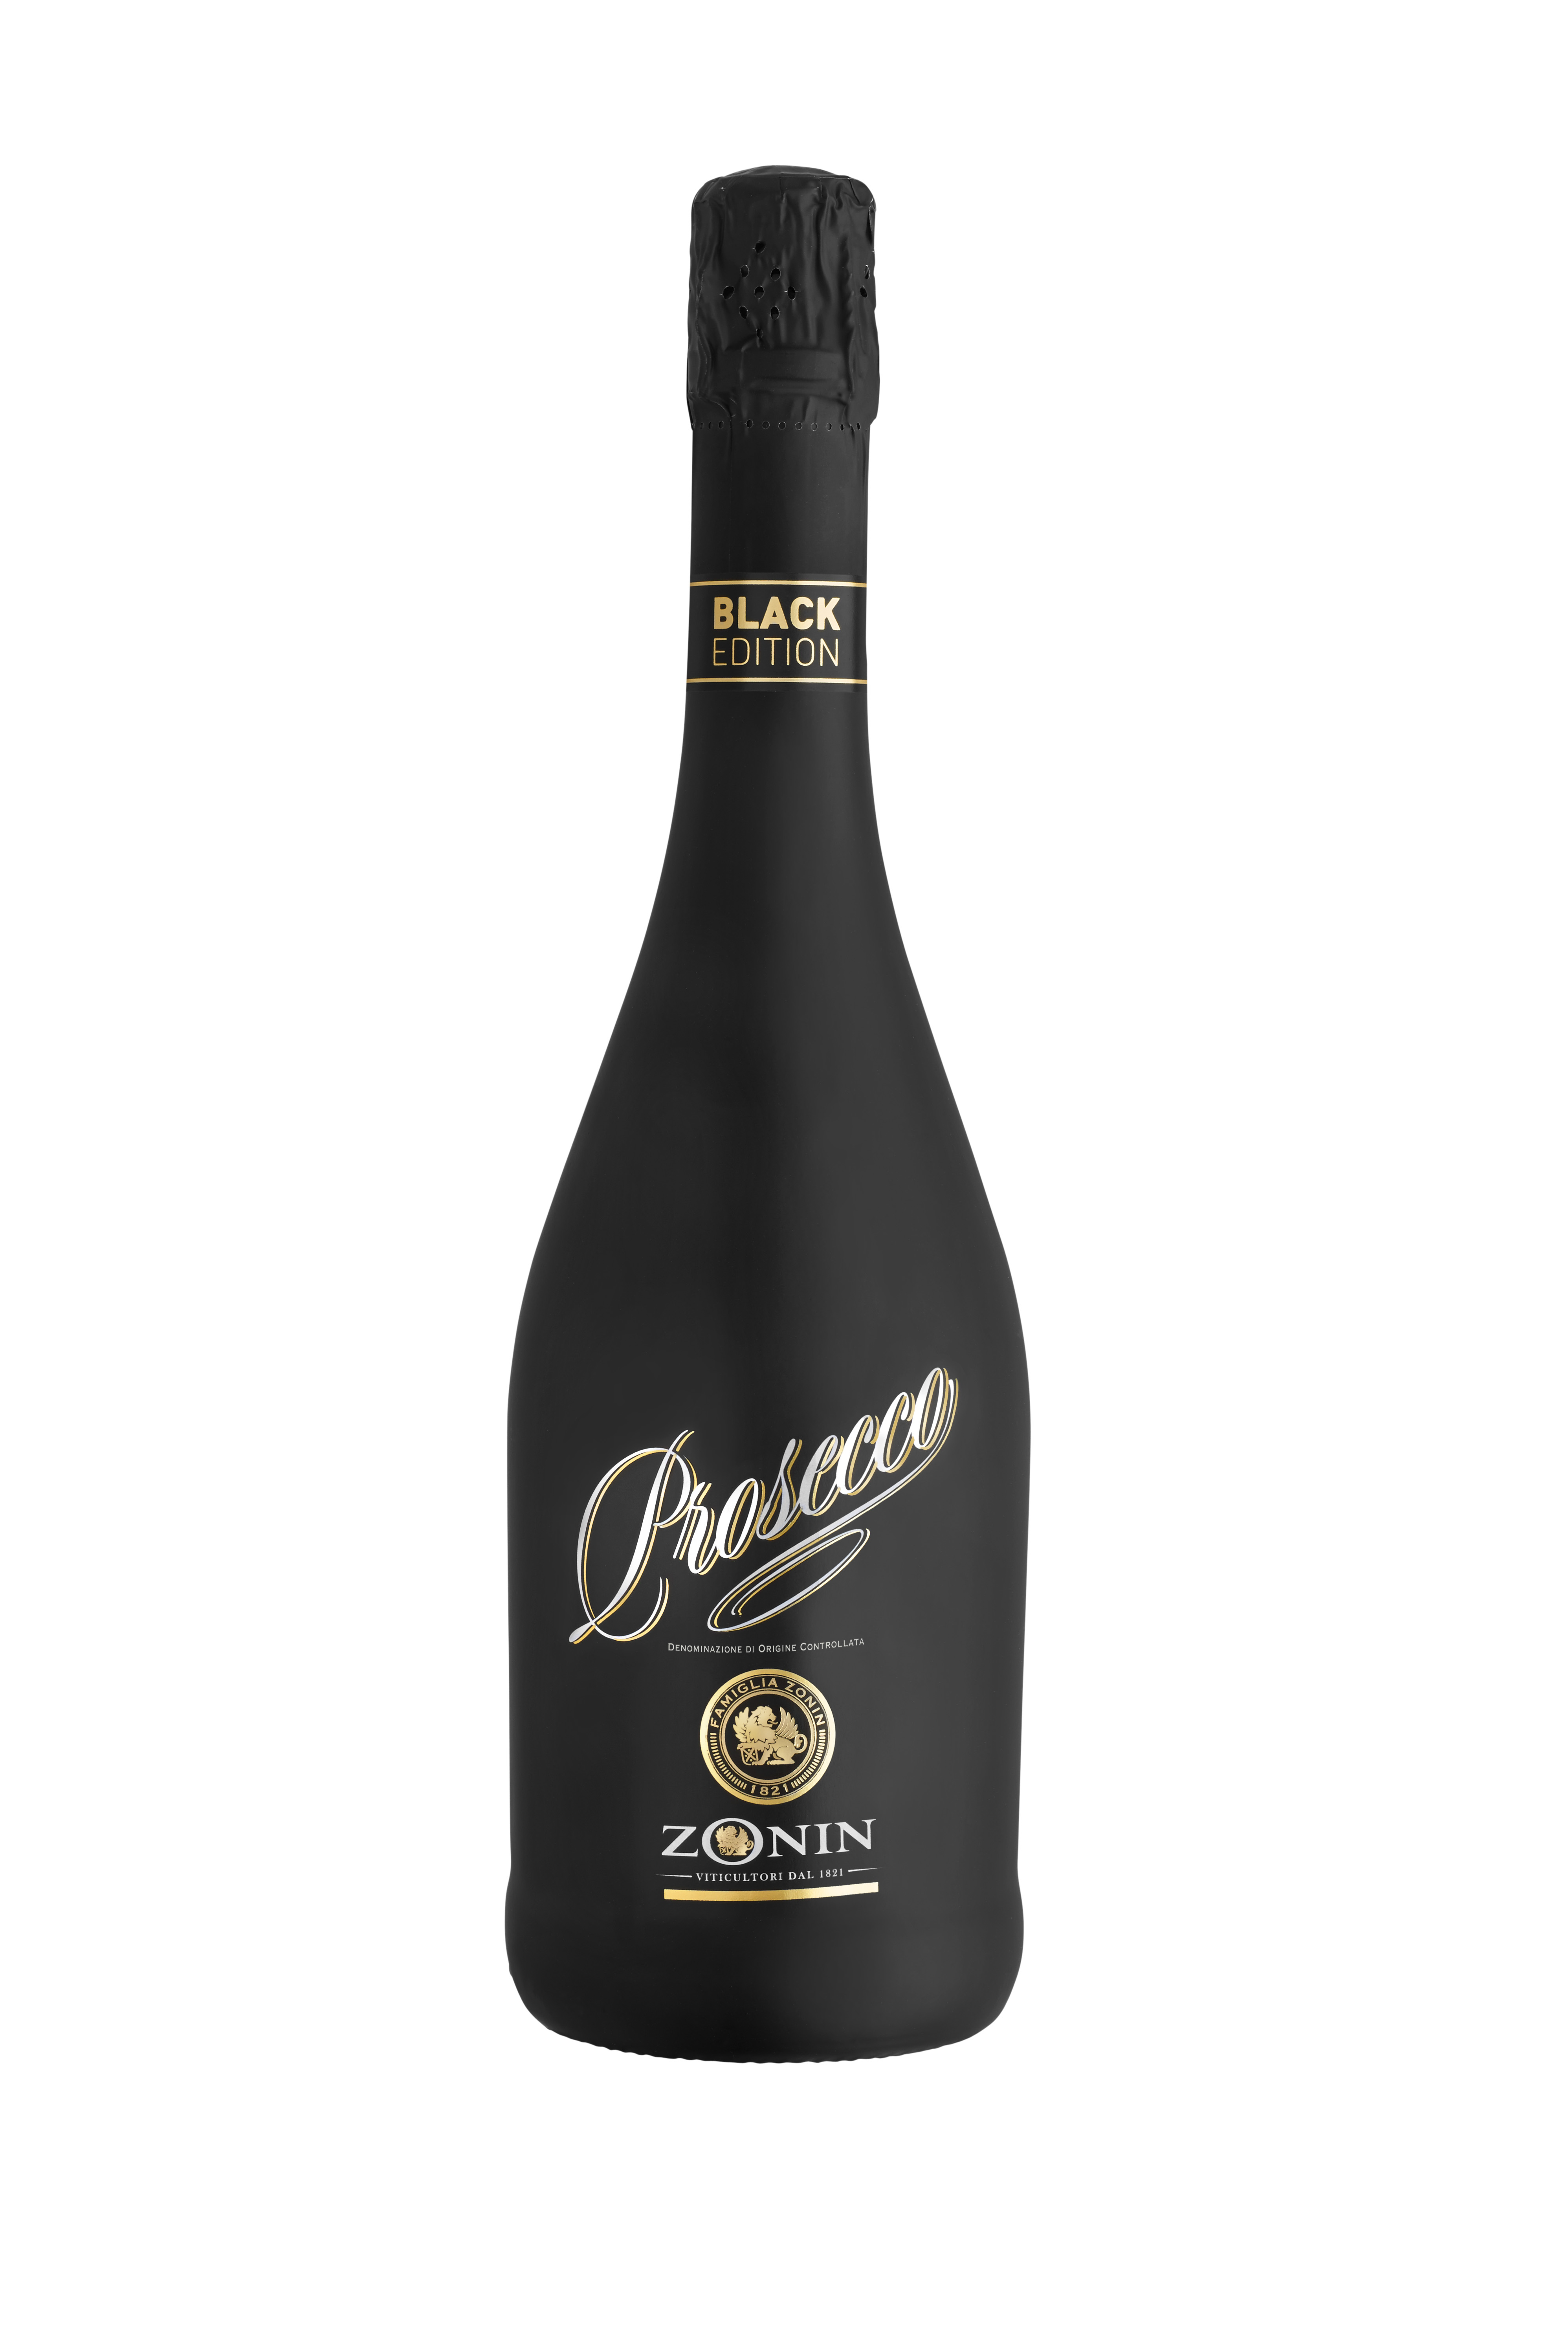 Prosecco Sparkling Wine from Italy